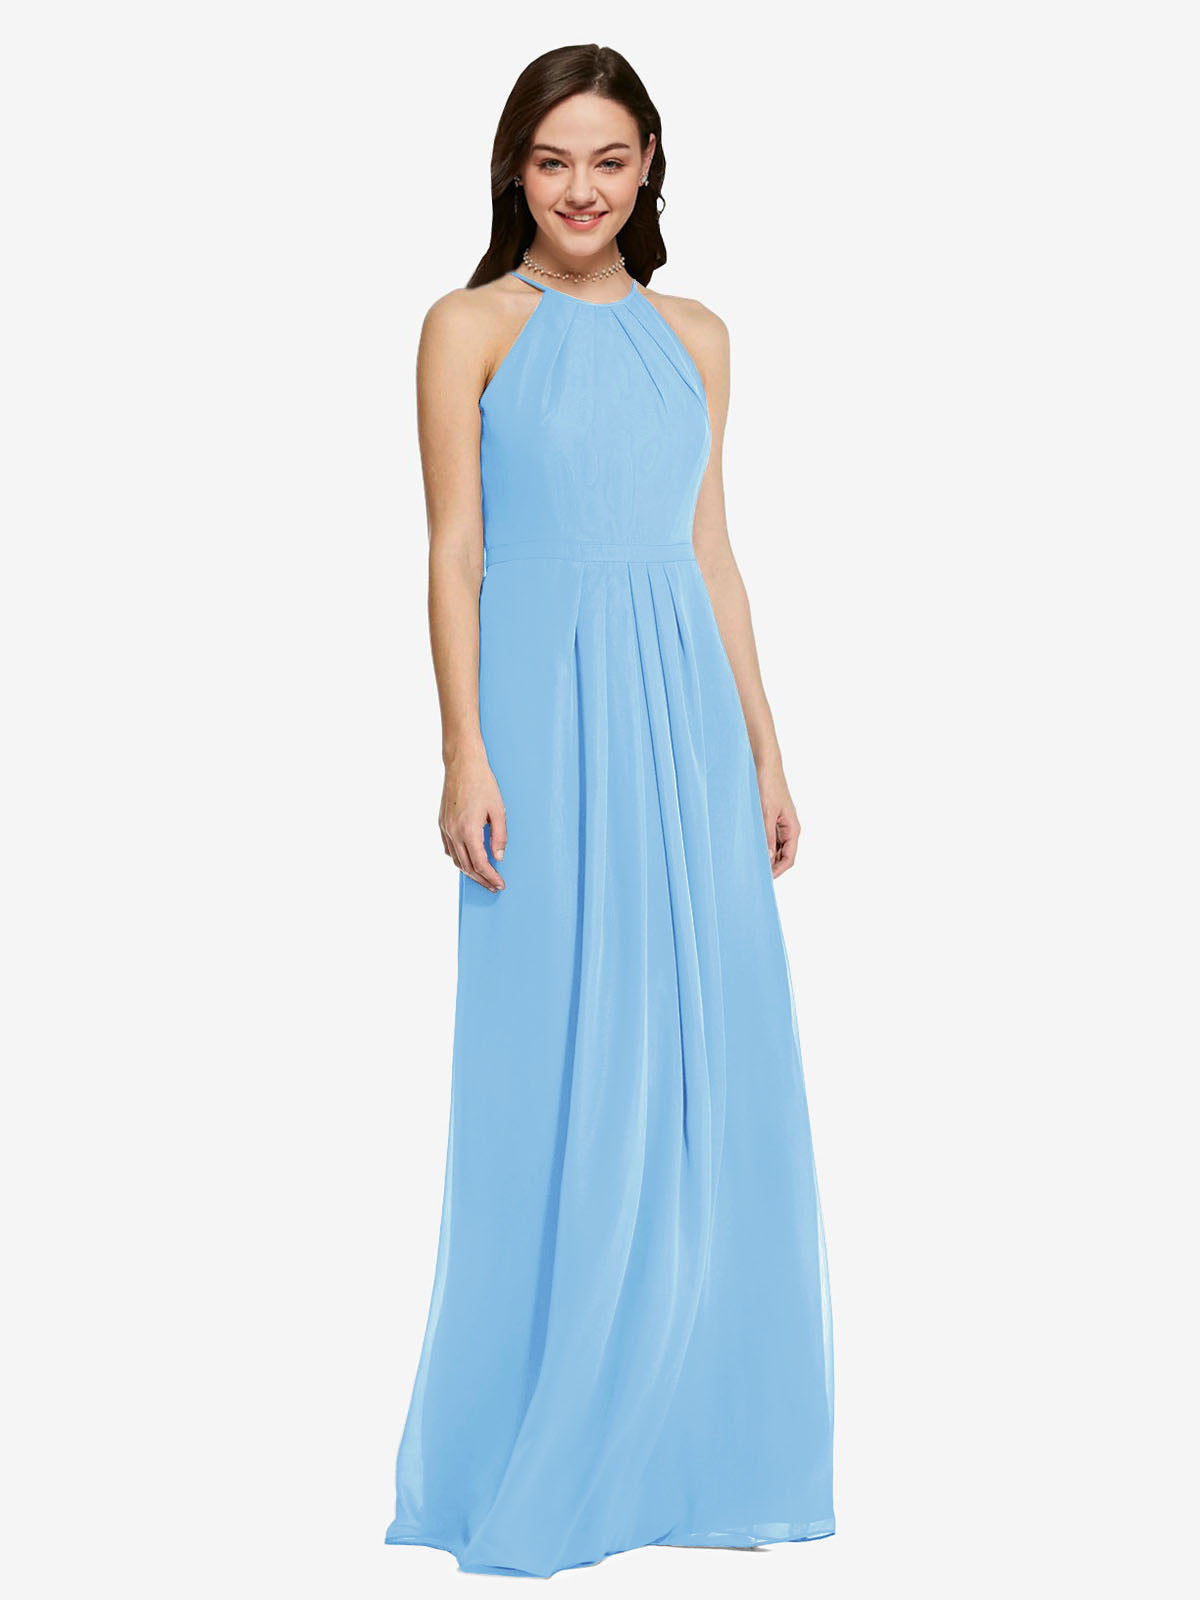 Long Sheath High Neck Halter Sleeveless Periwinkle Chiffon Bridesmaid Dress Koloti